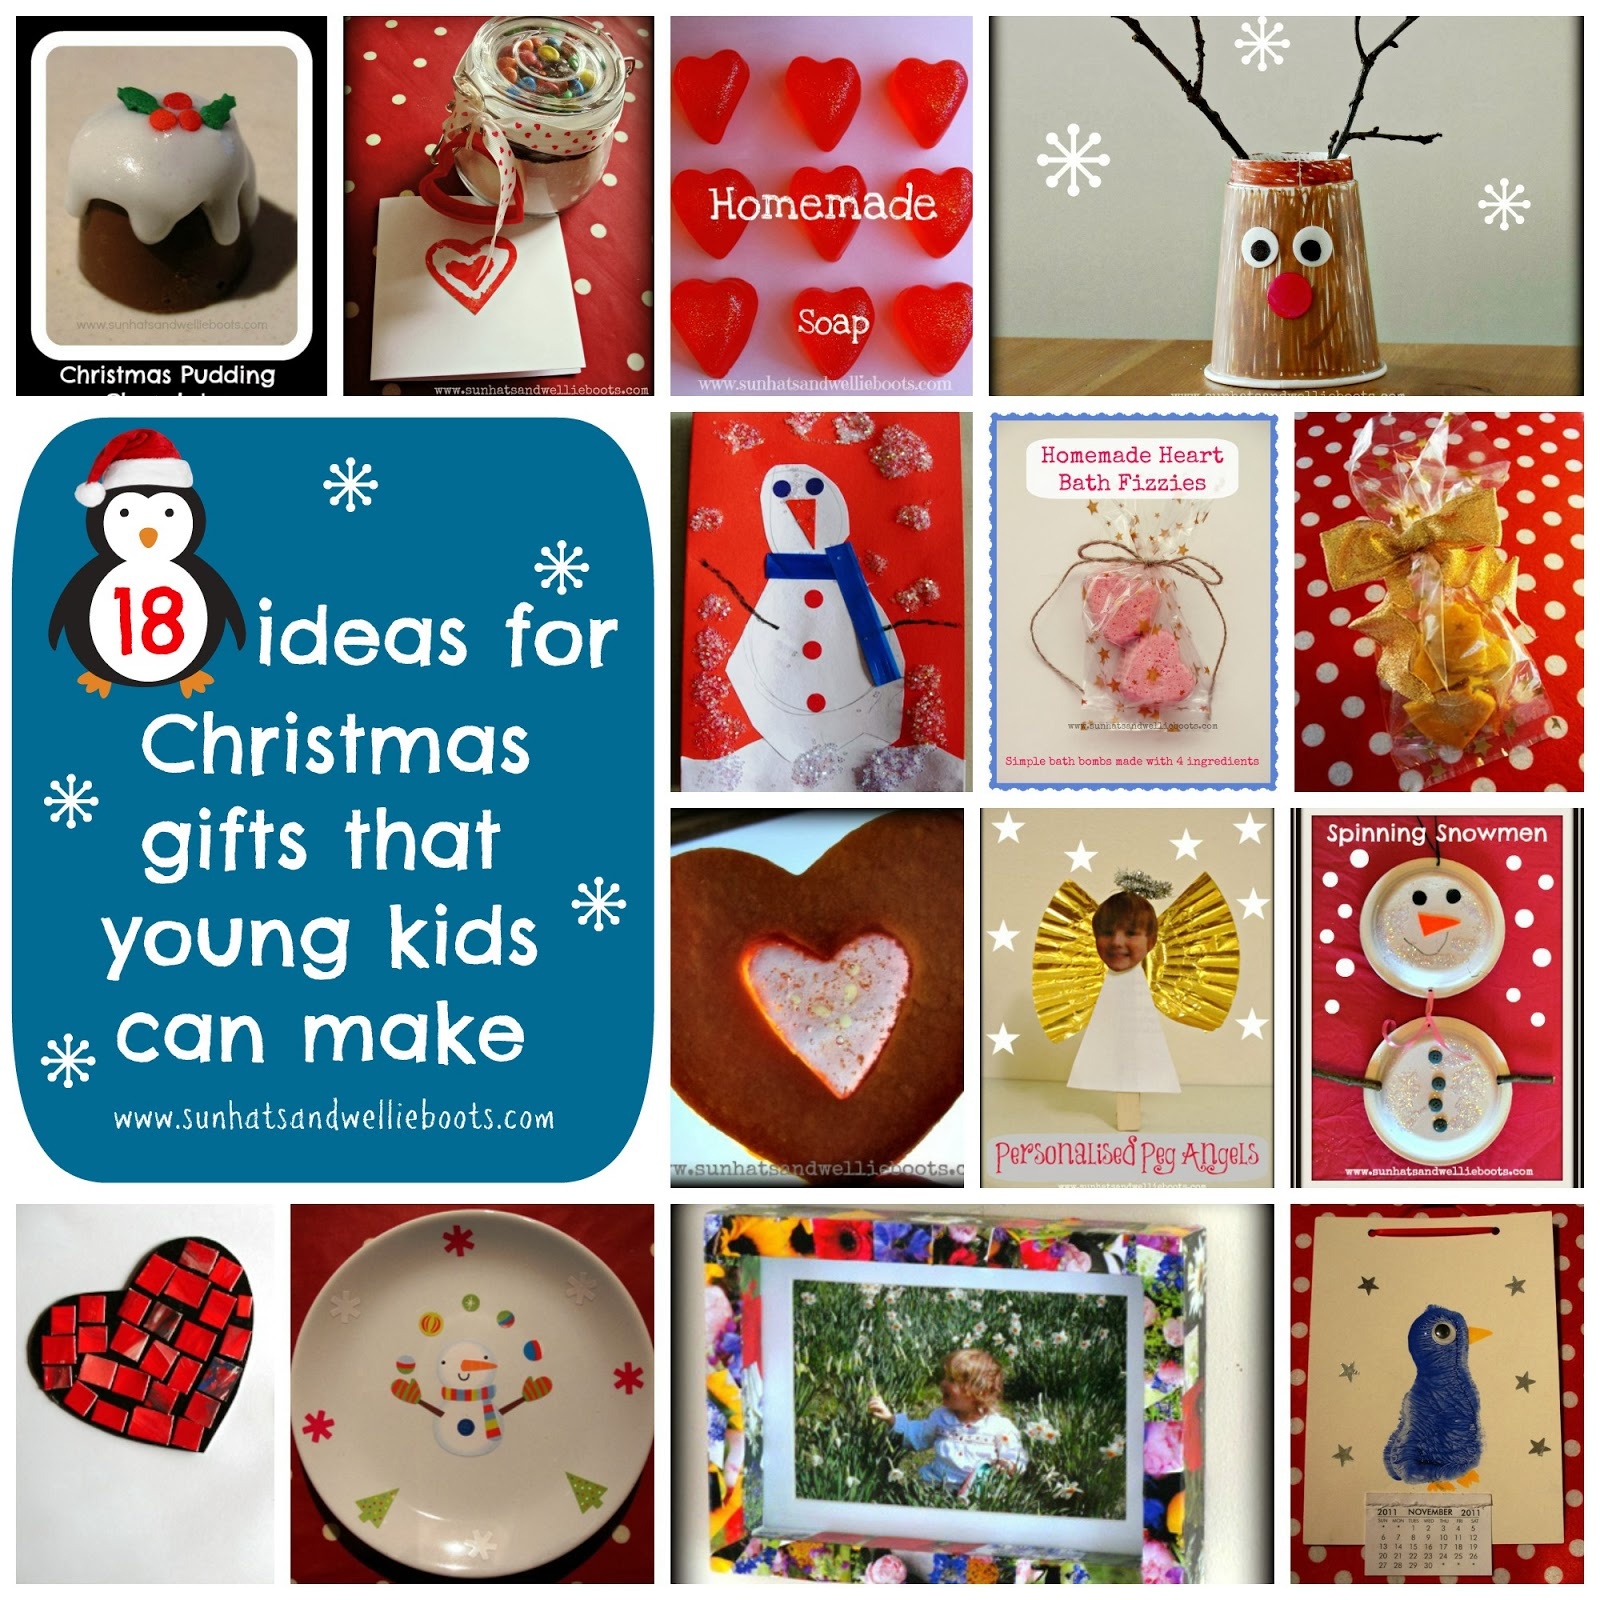 Handmade Christmas Gifts For Kids: Sun Hats & Wellie Boots: 18 Homemade Christmas Gifts That